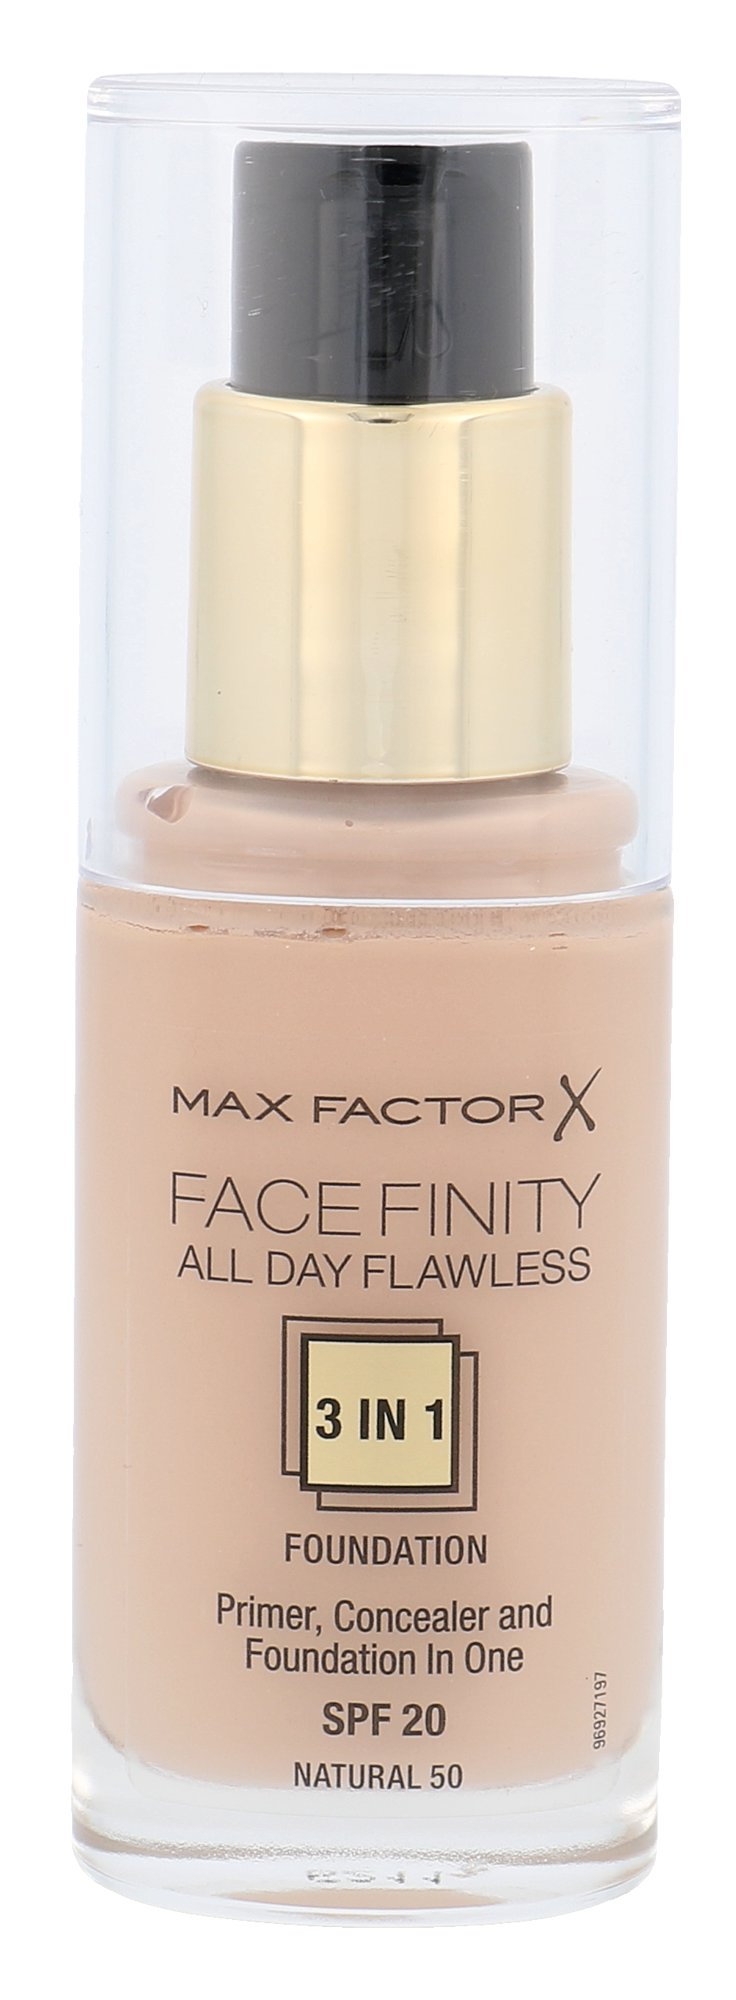 Max Factor Facefinity, Makeup 30ml